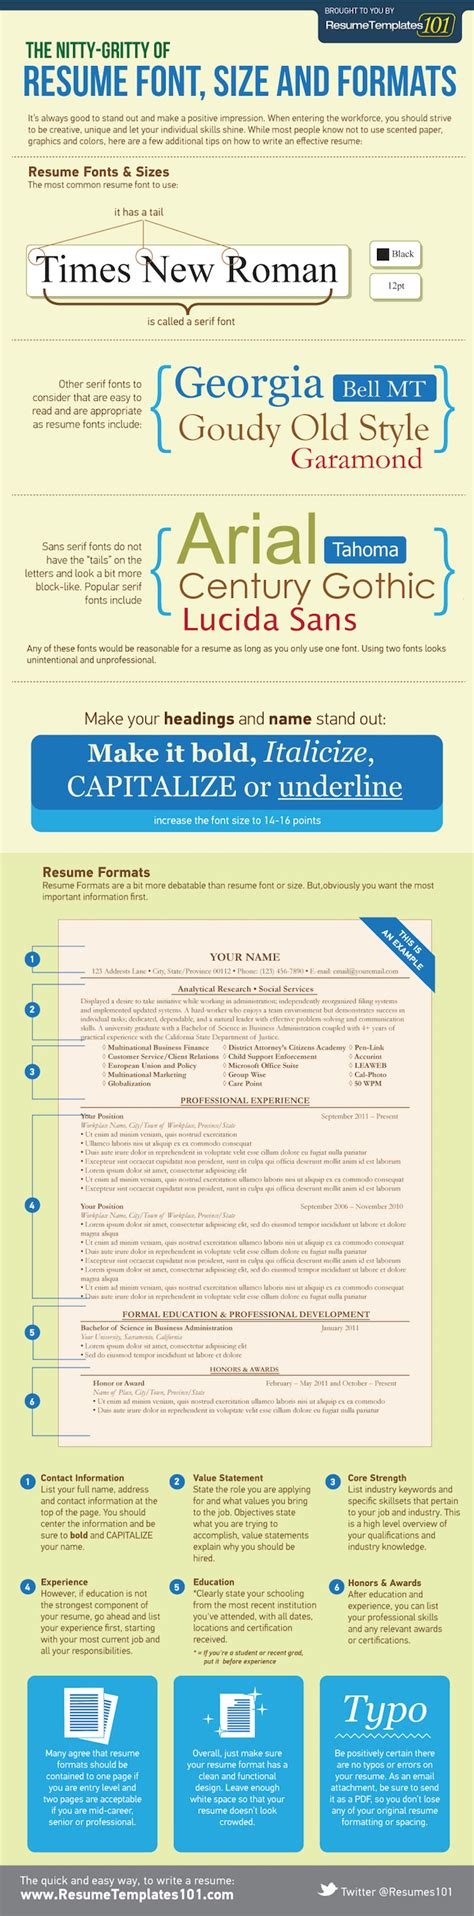 how to properly format your resume infographic